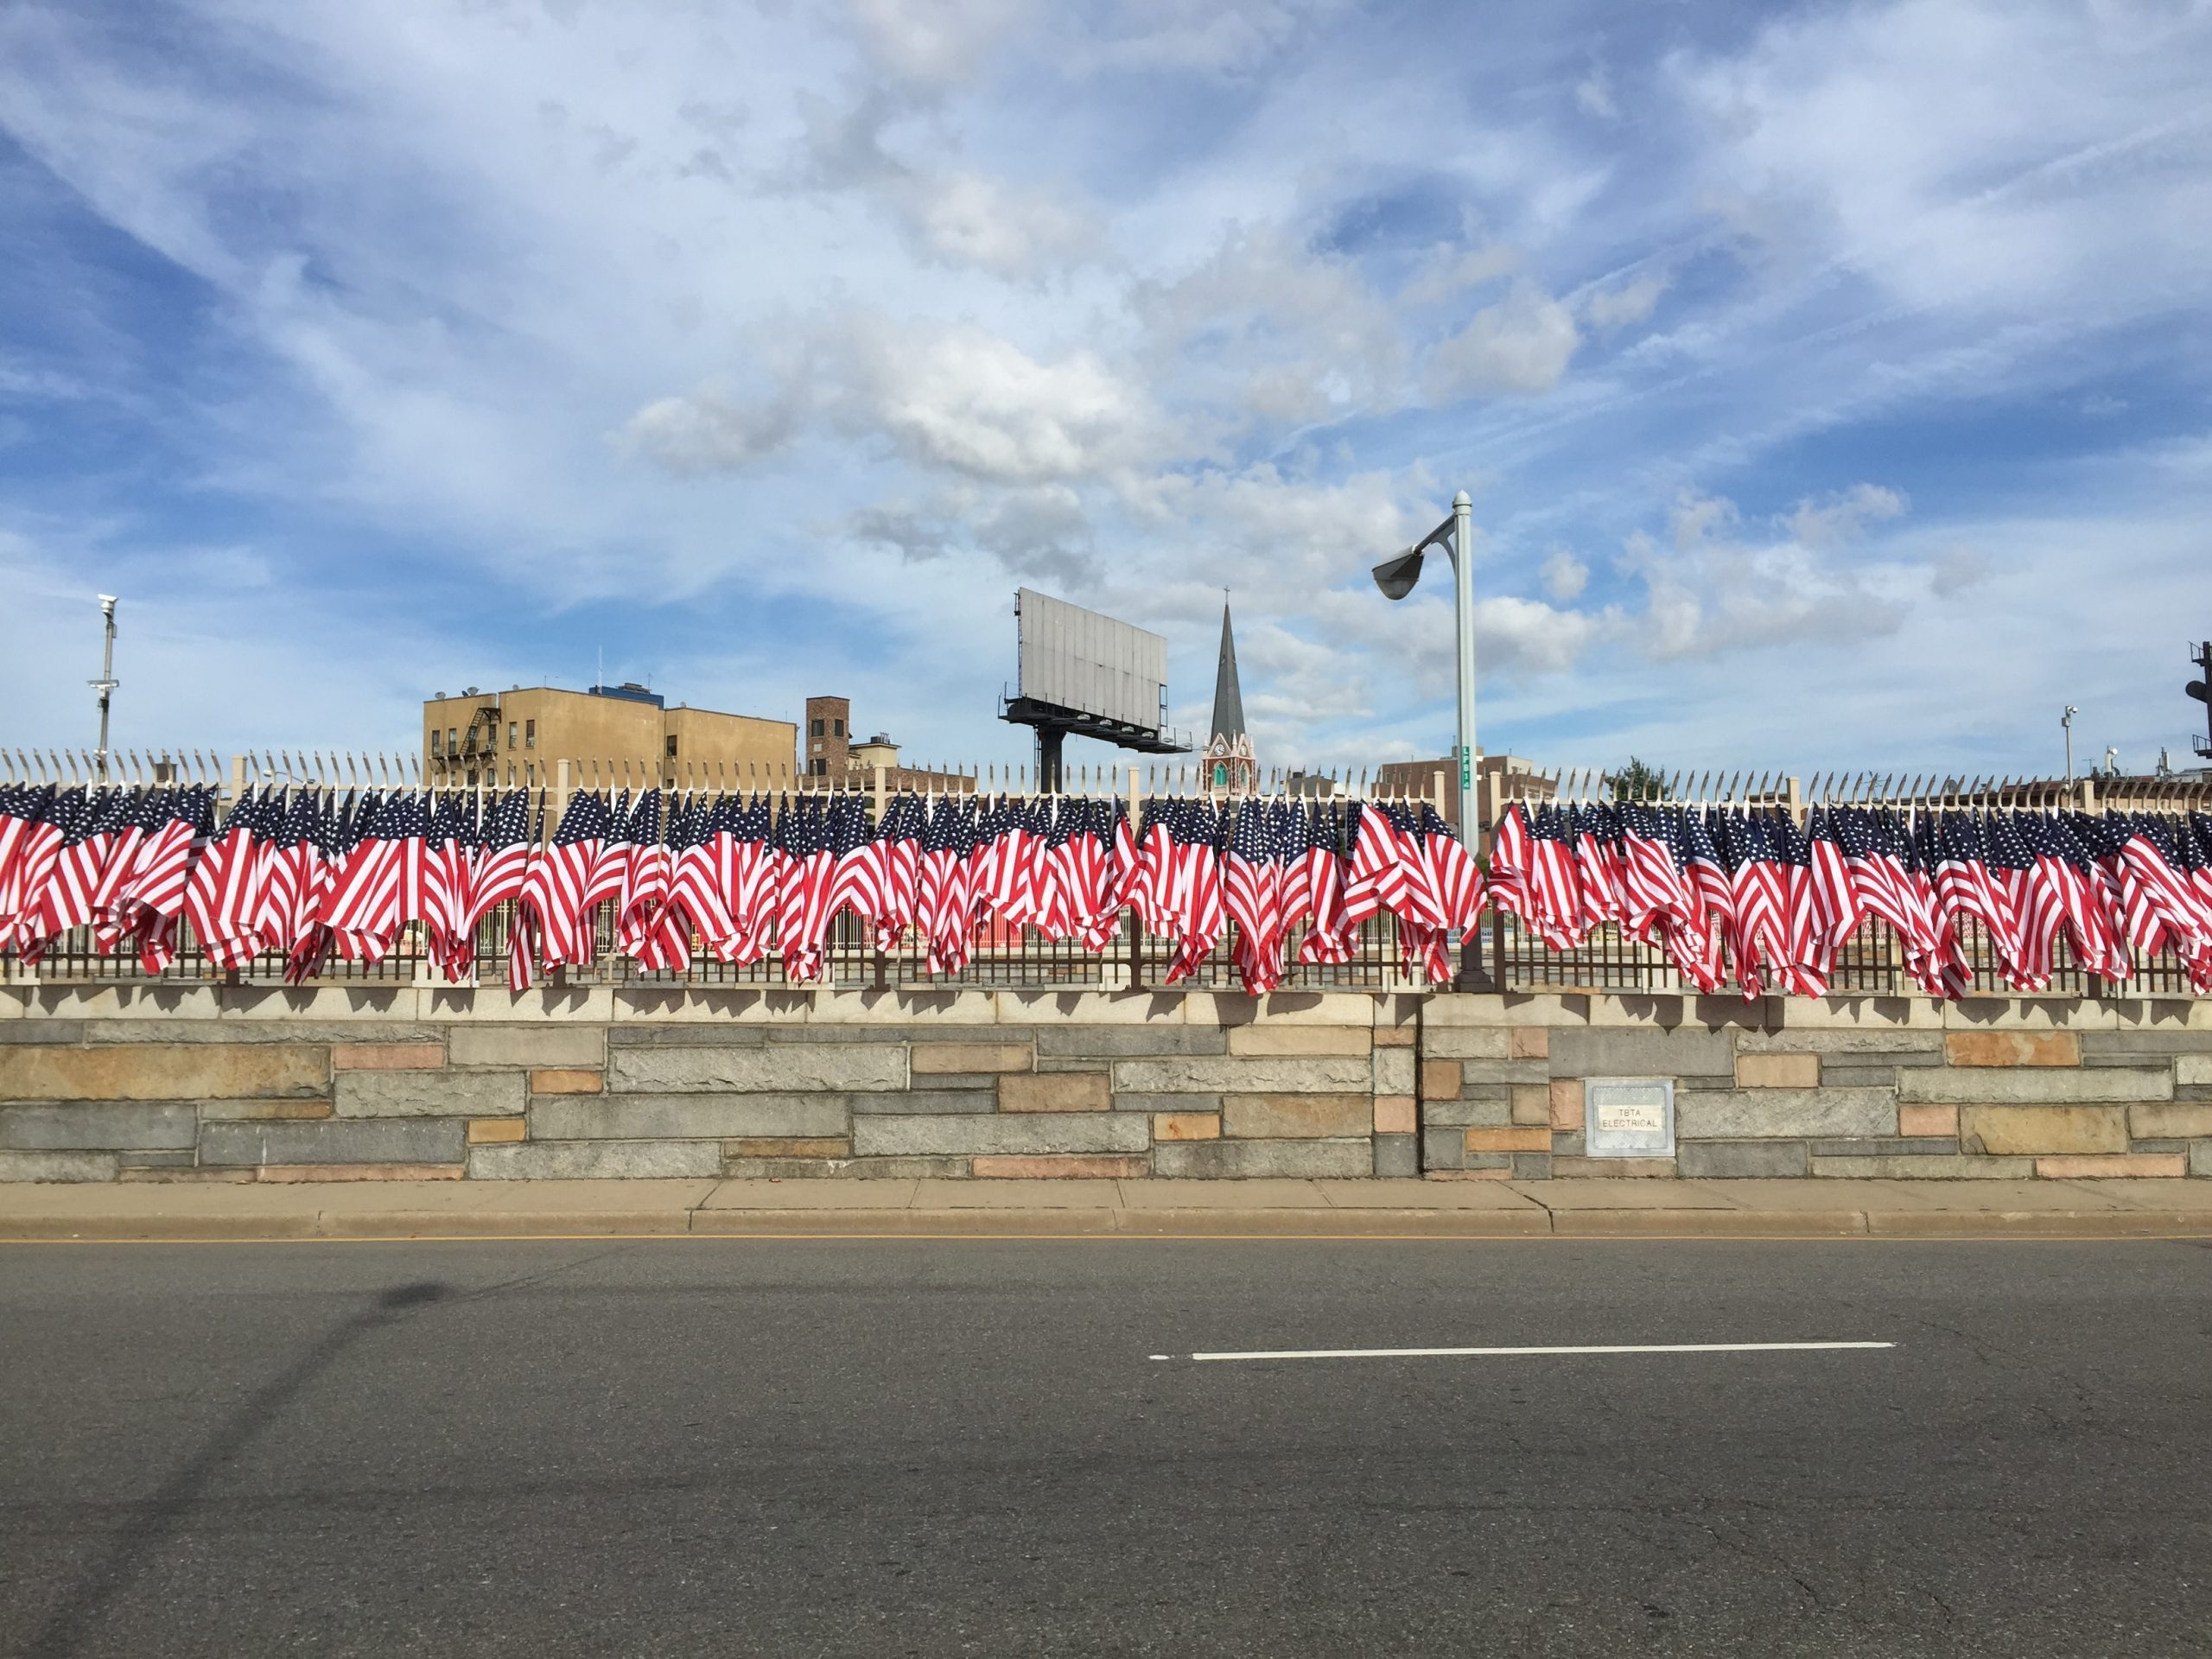 american flags line the side of a road for a running event in new york city